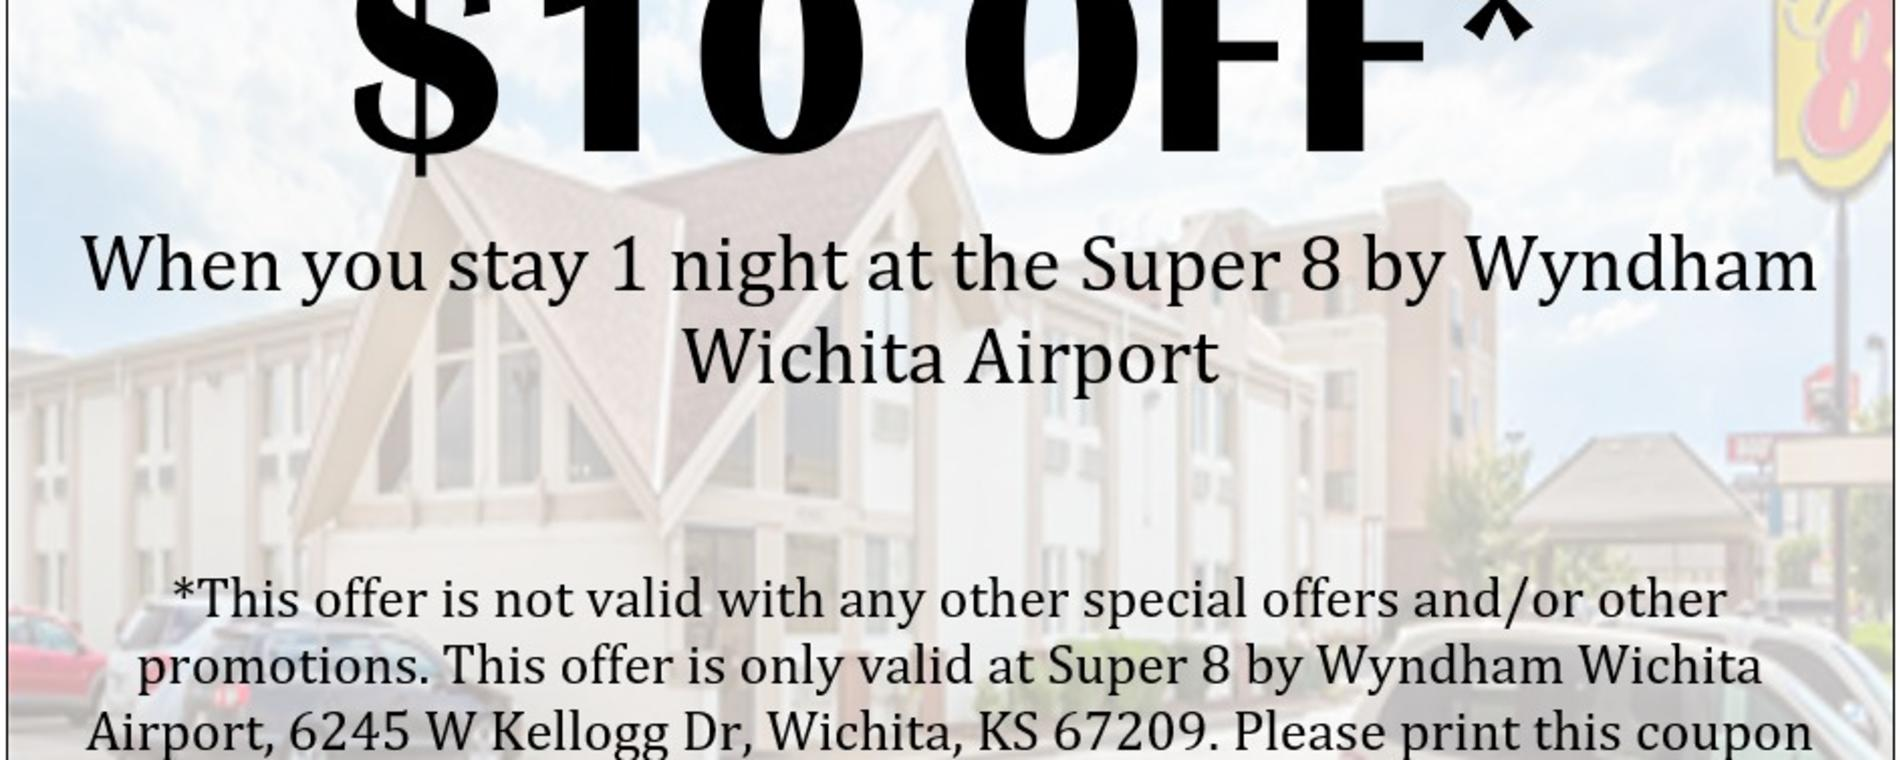 Super 8 Coupon